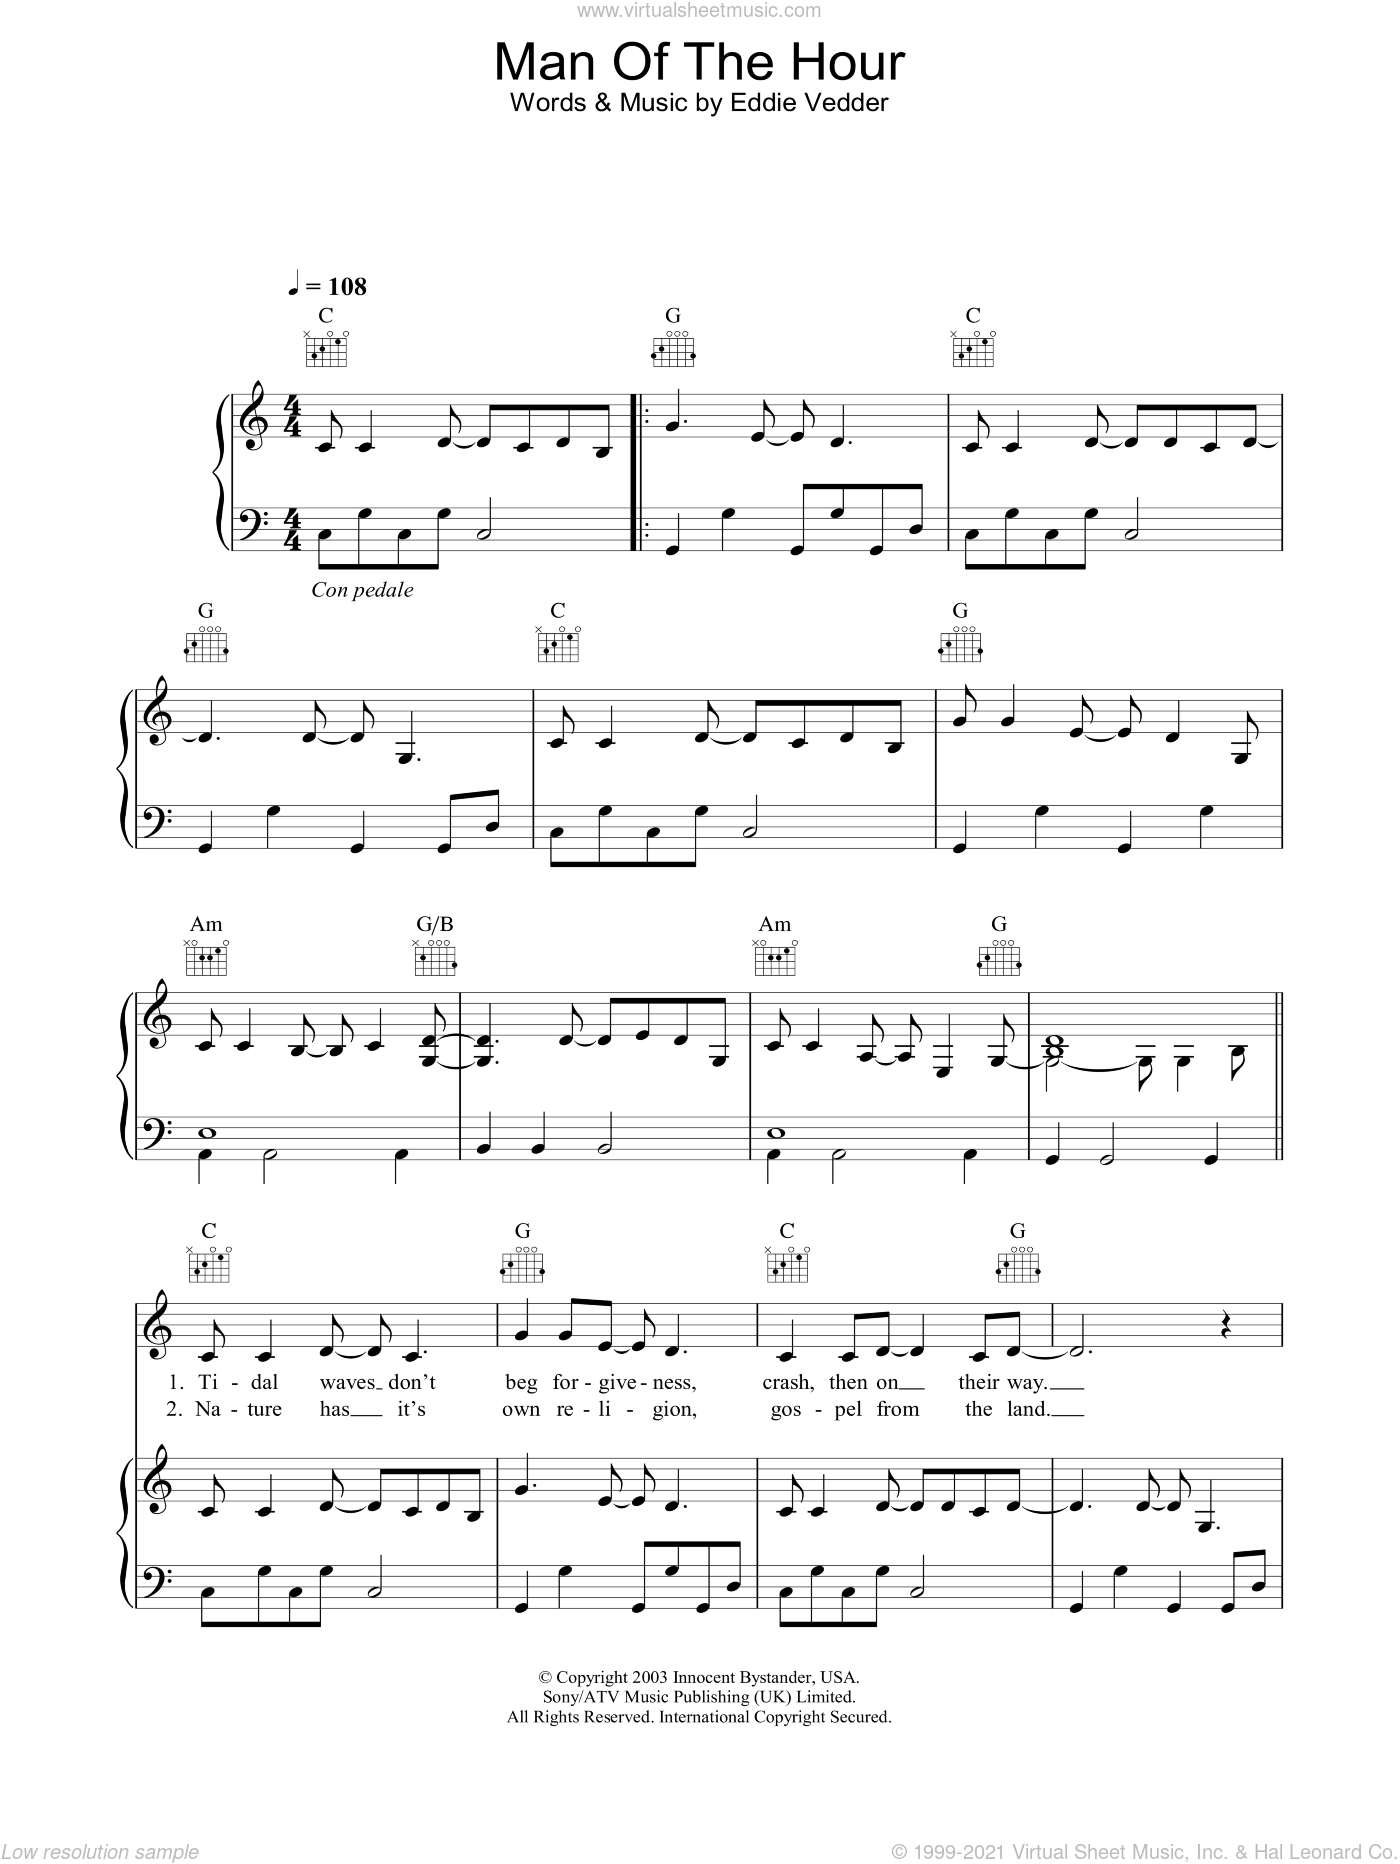 Man Of The Hour sheet music for voice, piano or guitar by Pearl Jam and Eddie Vedder, intermediate skill level